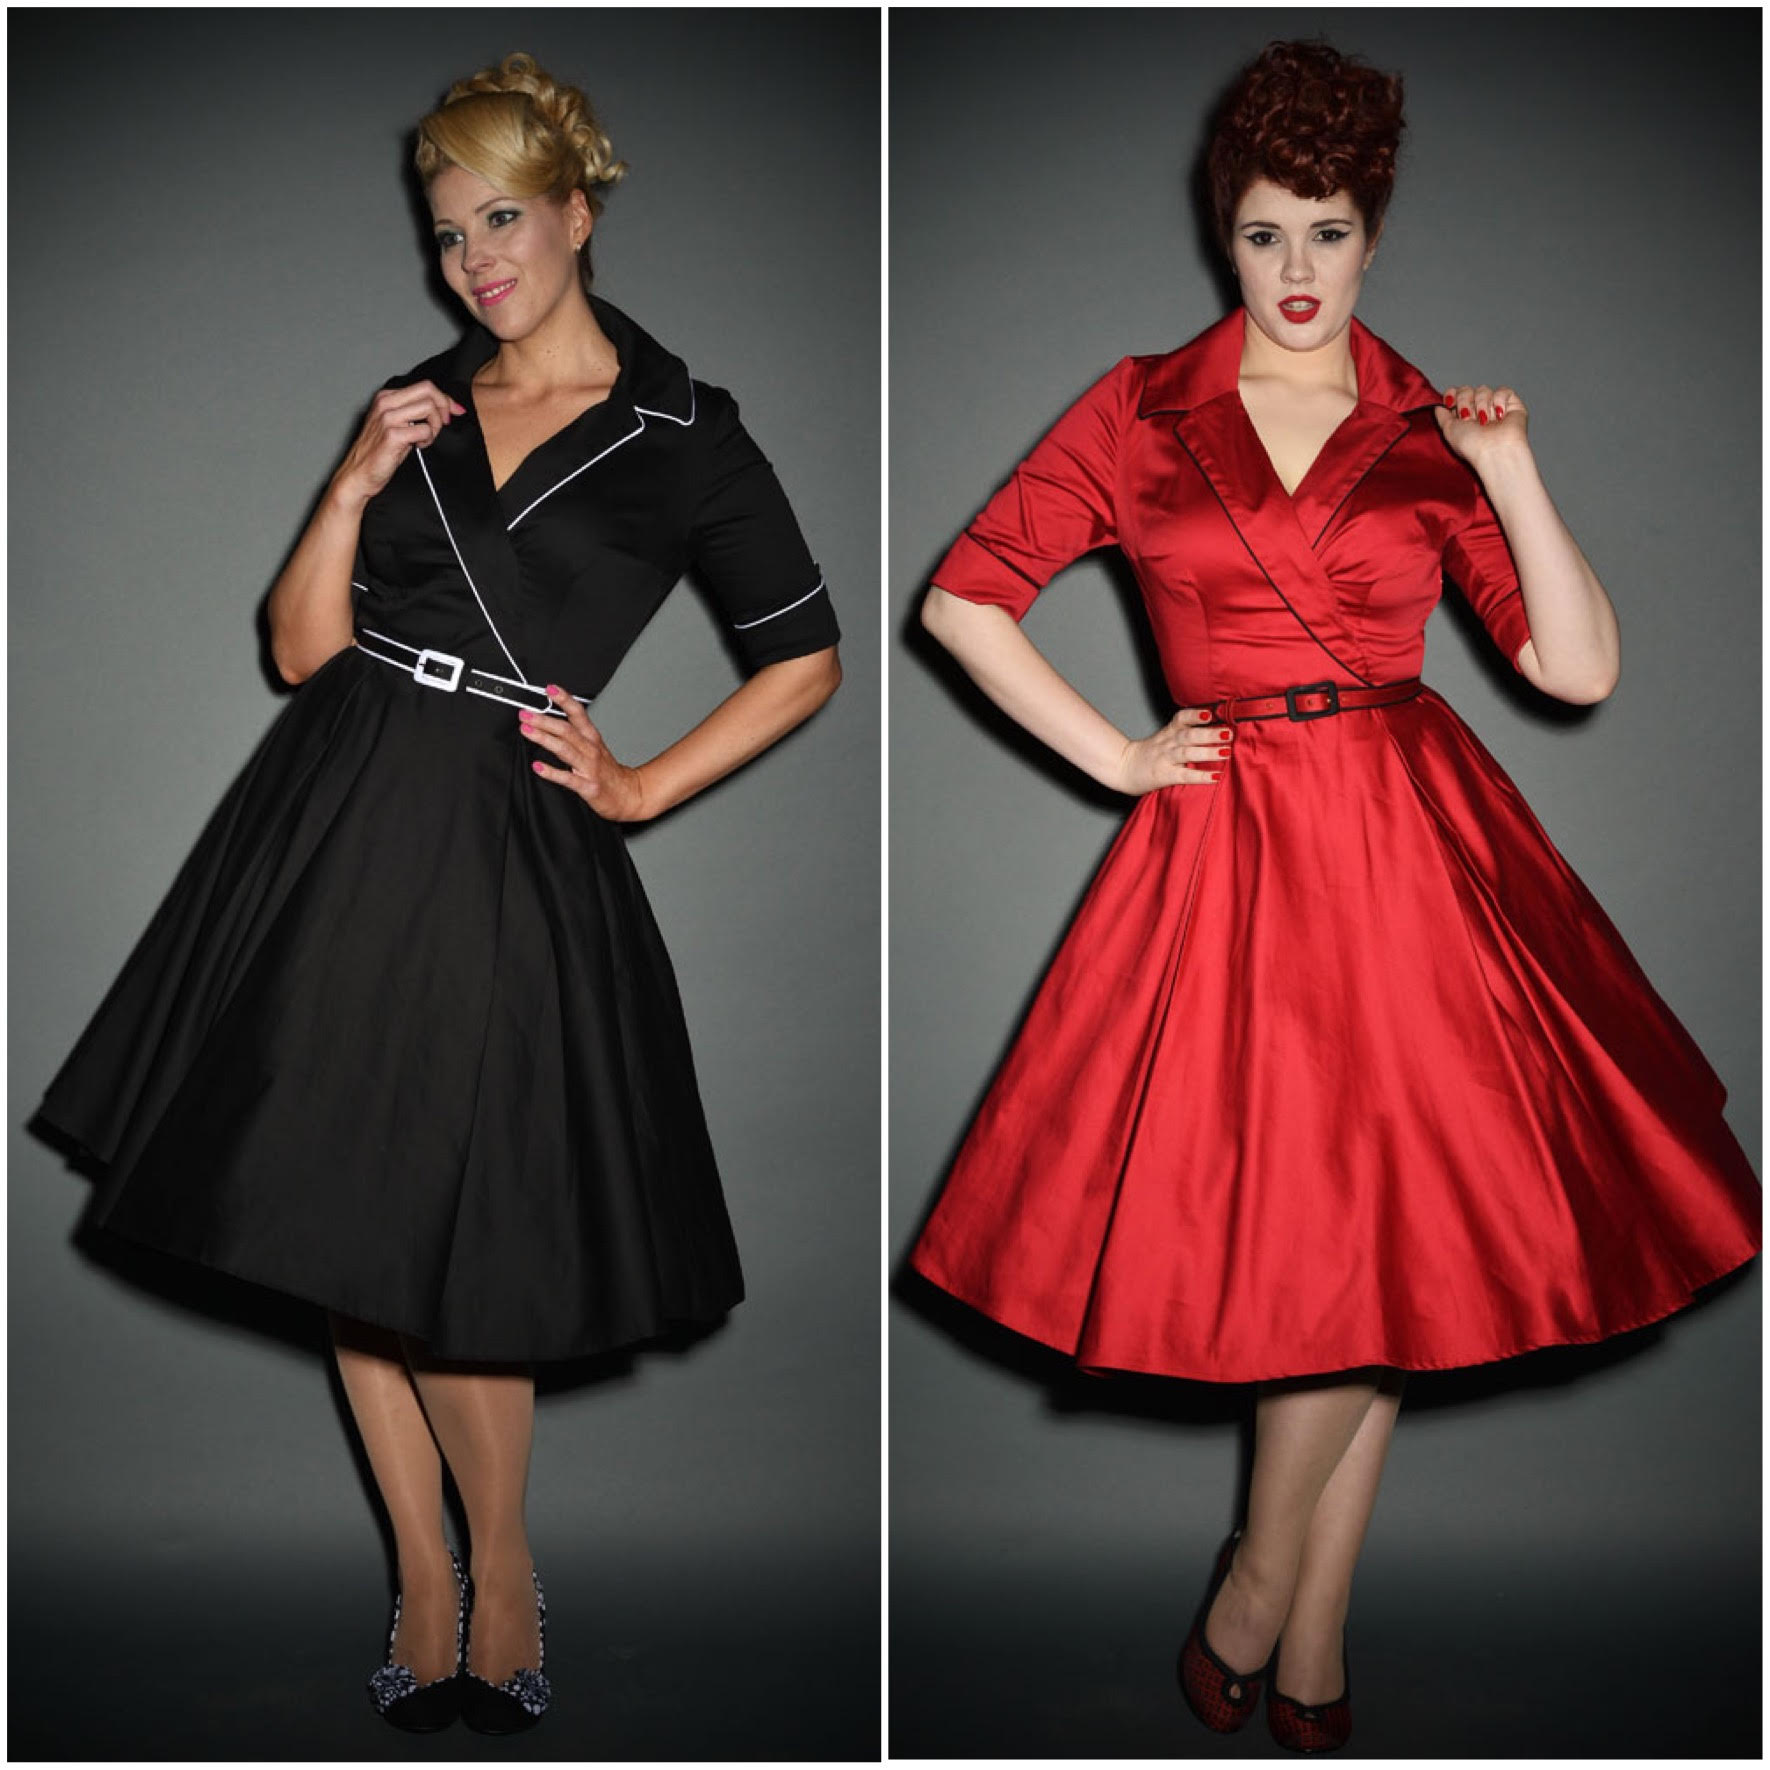 Haunted Housewife Swing Dress in Black and Red Deadly Dames